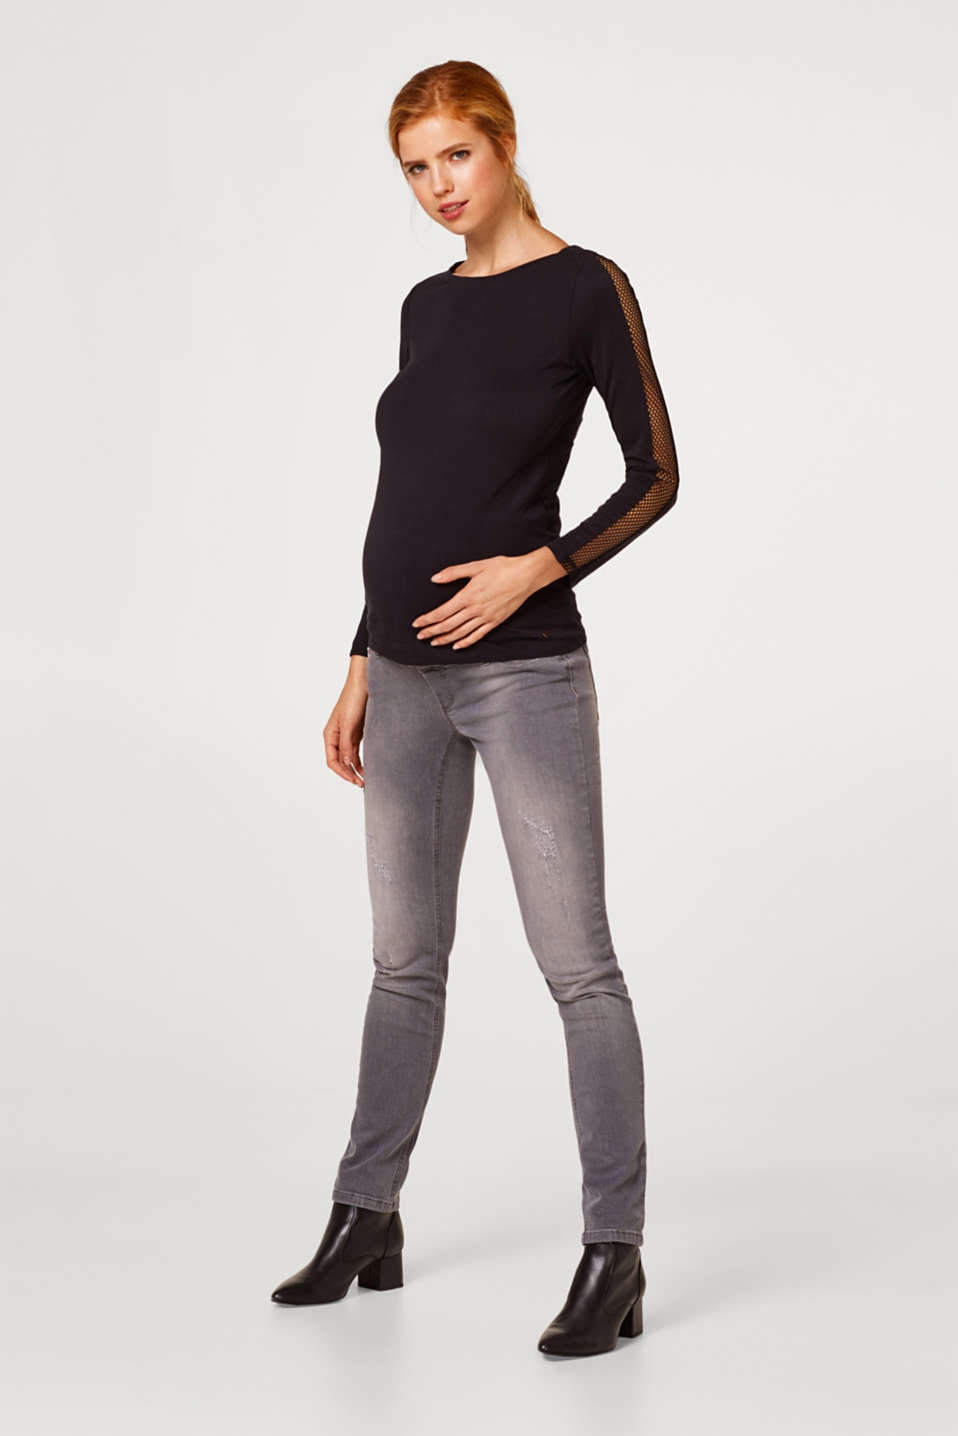 Esprit - Grey stretch jeans with an over-bump waistband